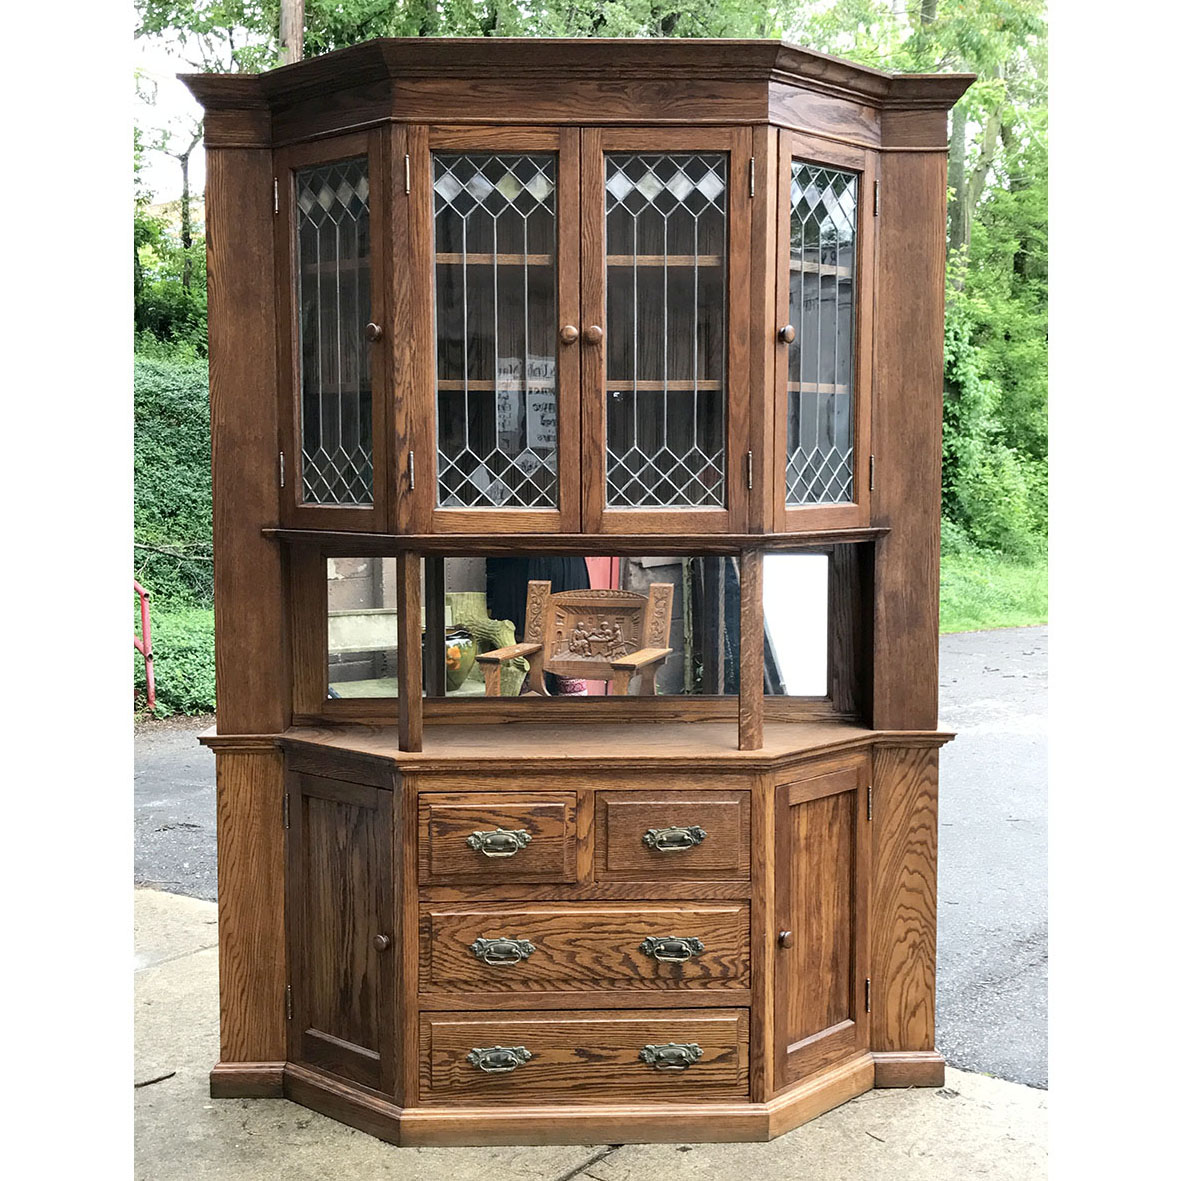 - F17049 - Antique Revival Period Oak Sideboard China Cabinet